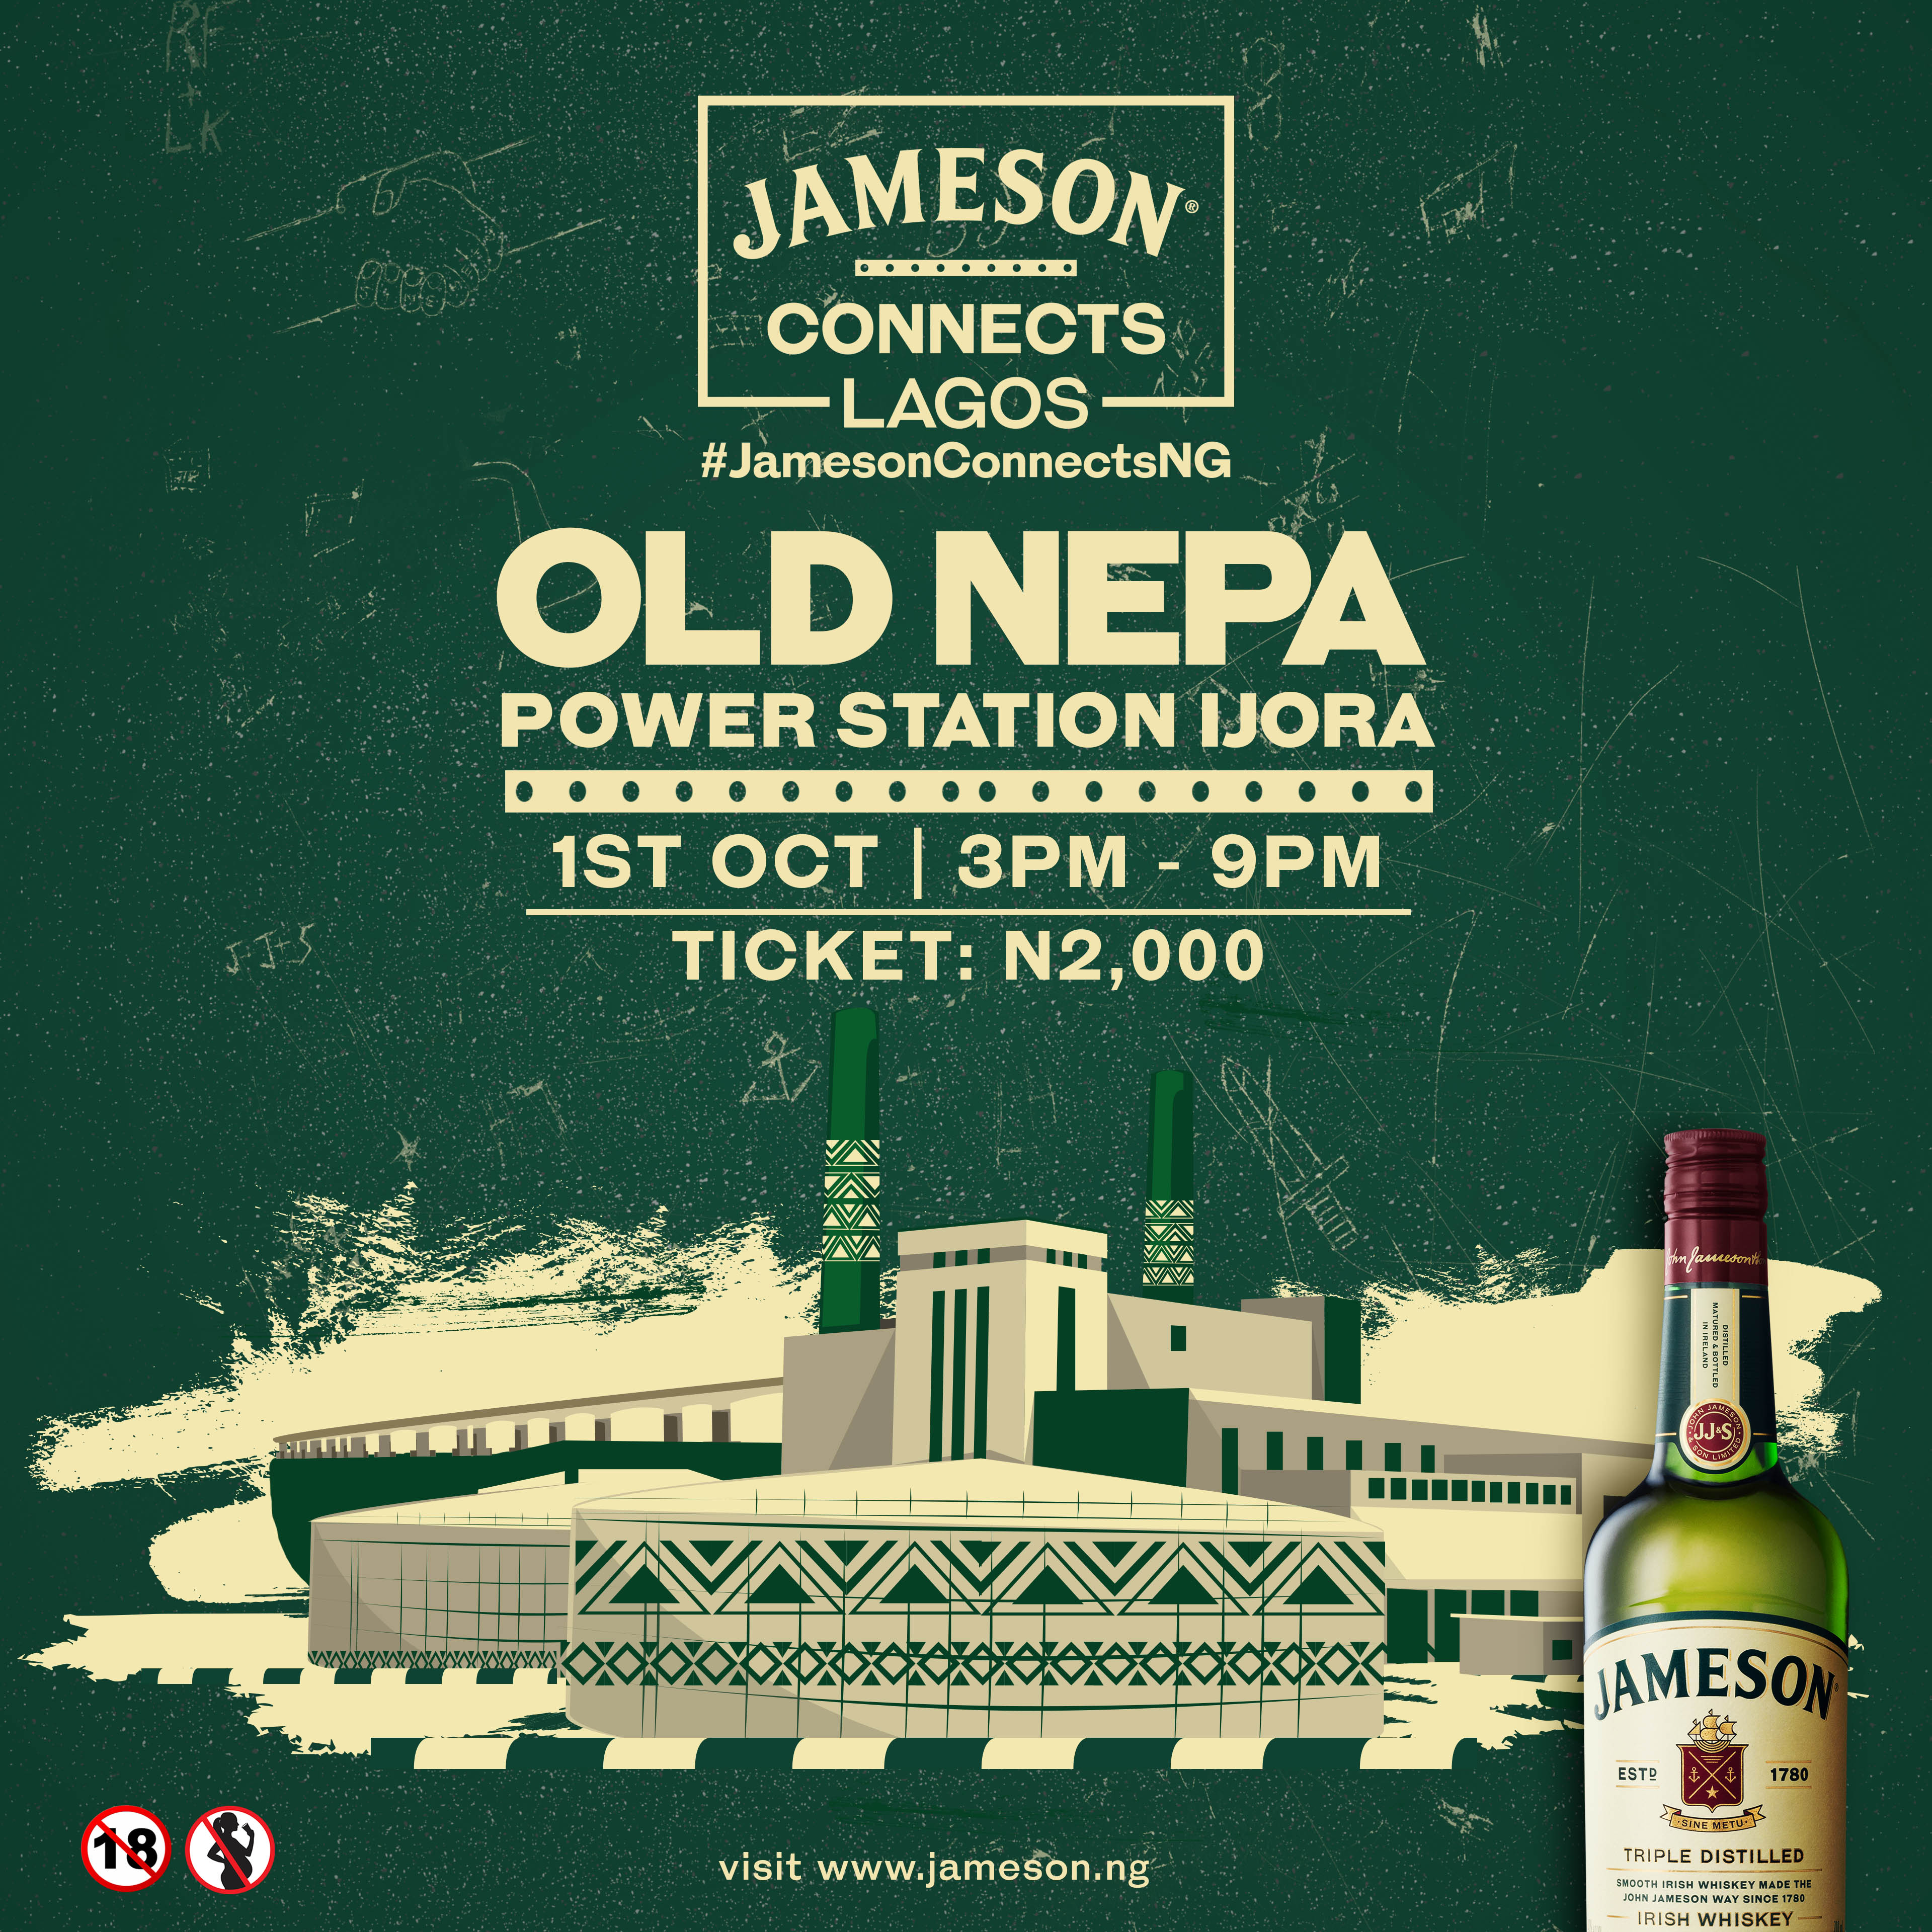 Experience Fashion, Music, Interactive Board & Video Games, Tasty Gourmet Food at Jameson Connects | October 1st